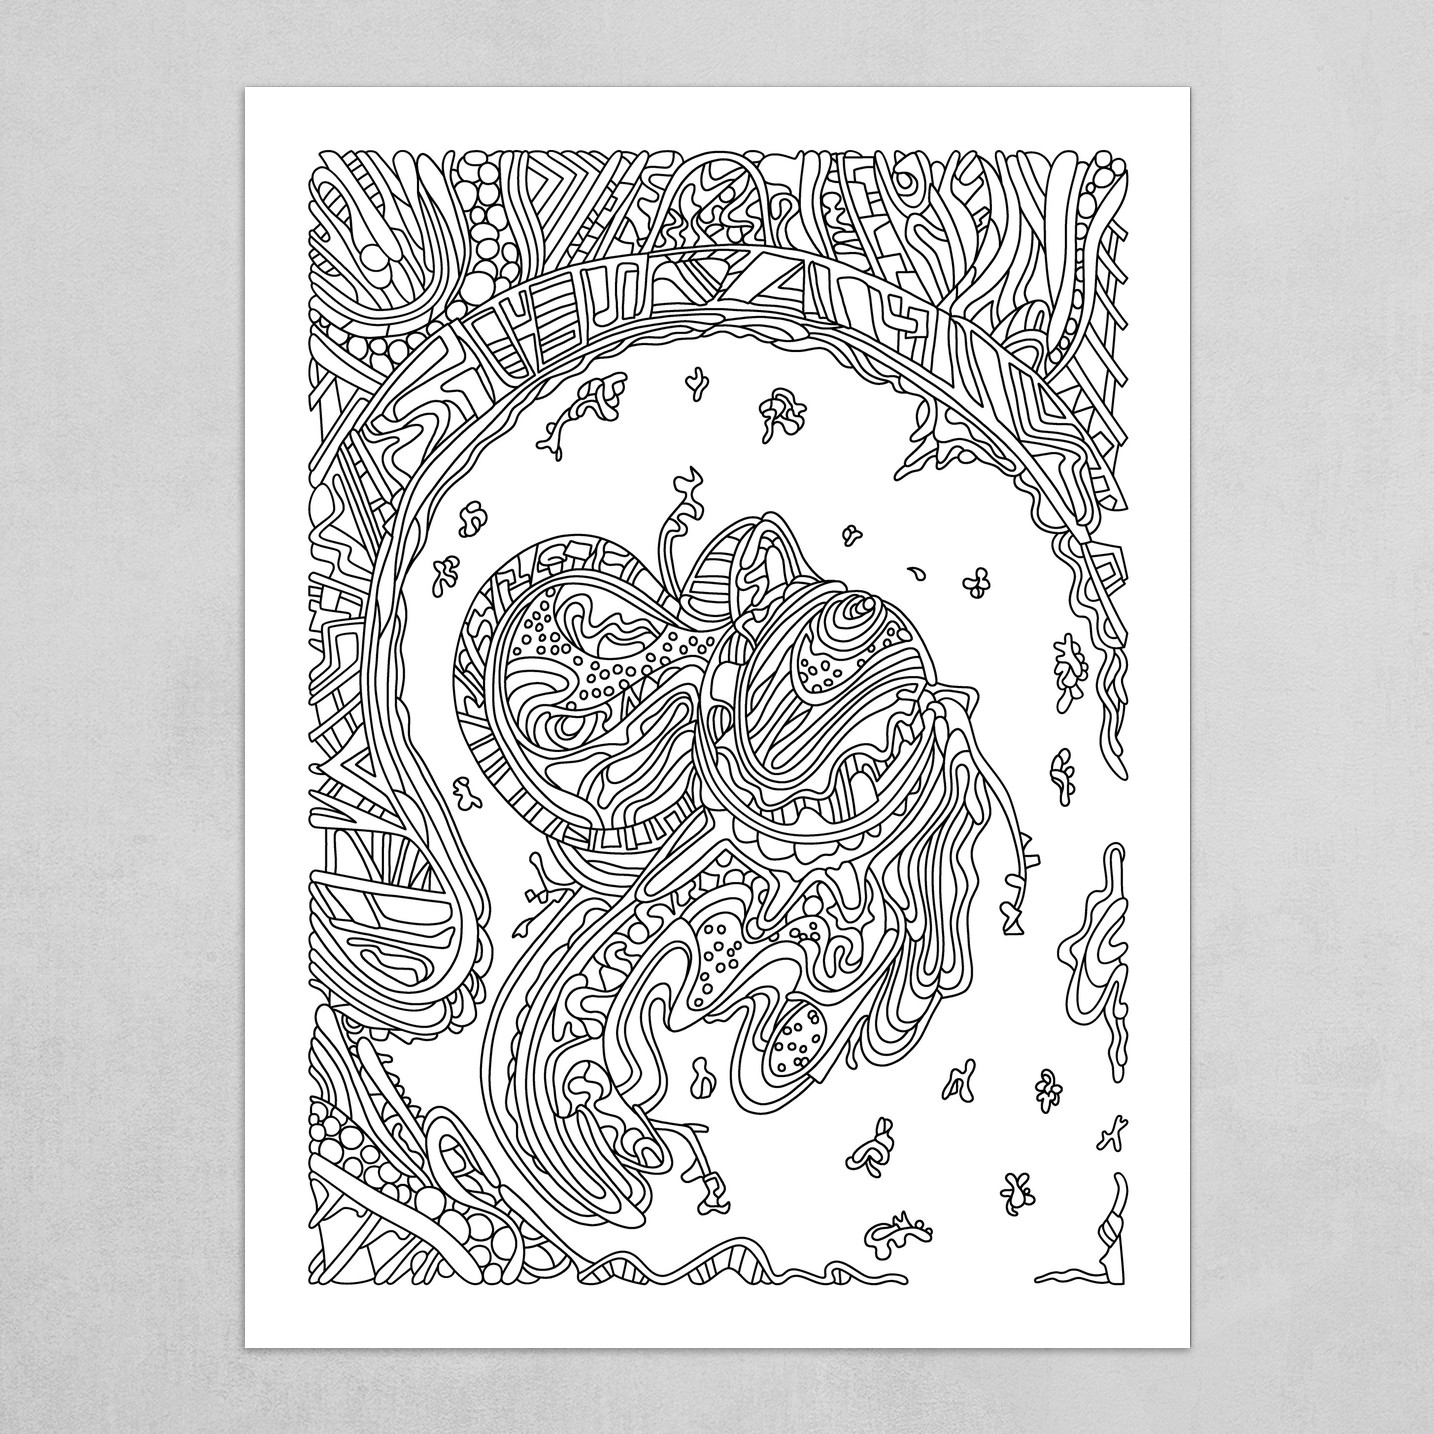 Wandering Abstract Line Art 50: Black & White